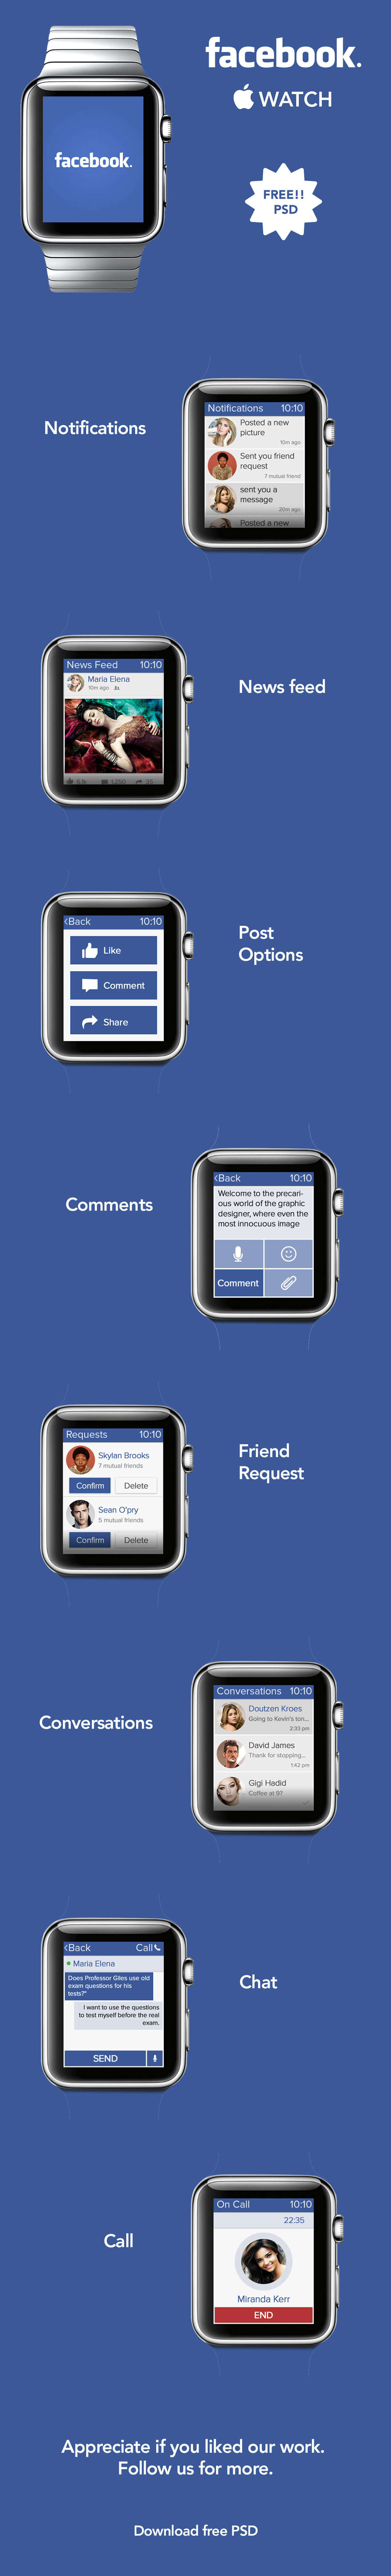 apple_watch_facebook_free_psd